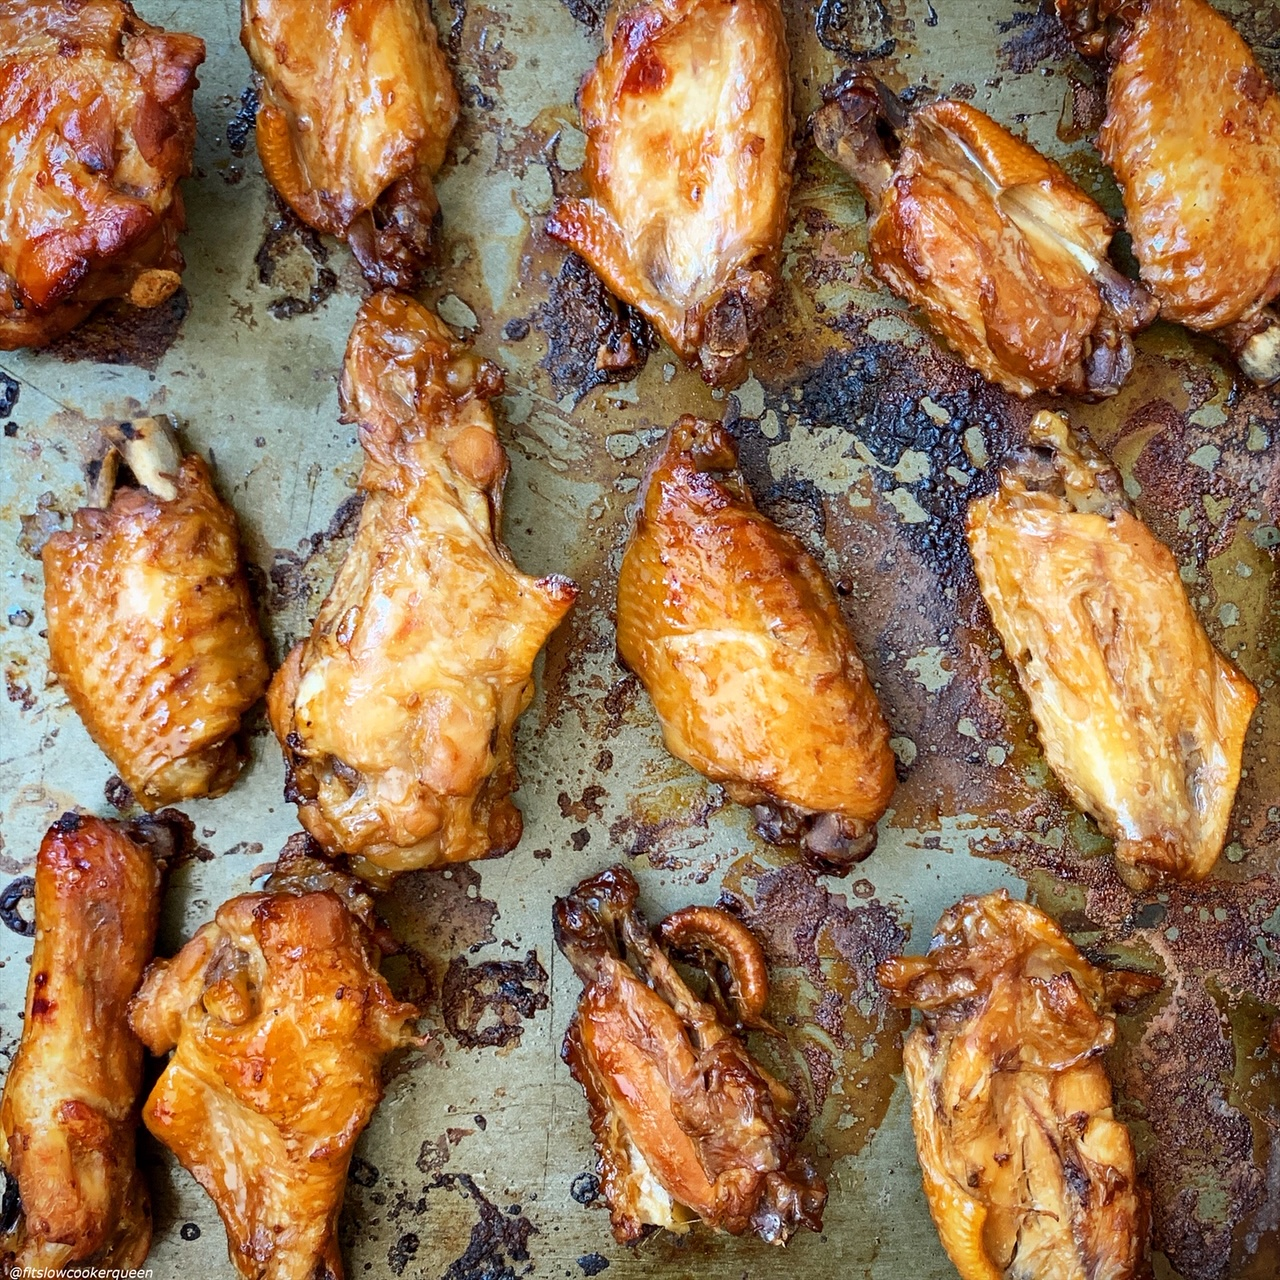 chicken wings on a baking sheet after being broiled